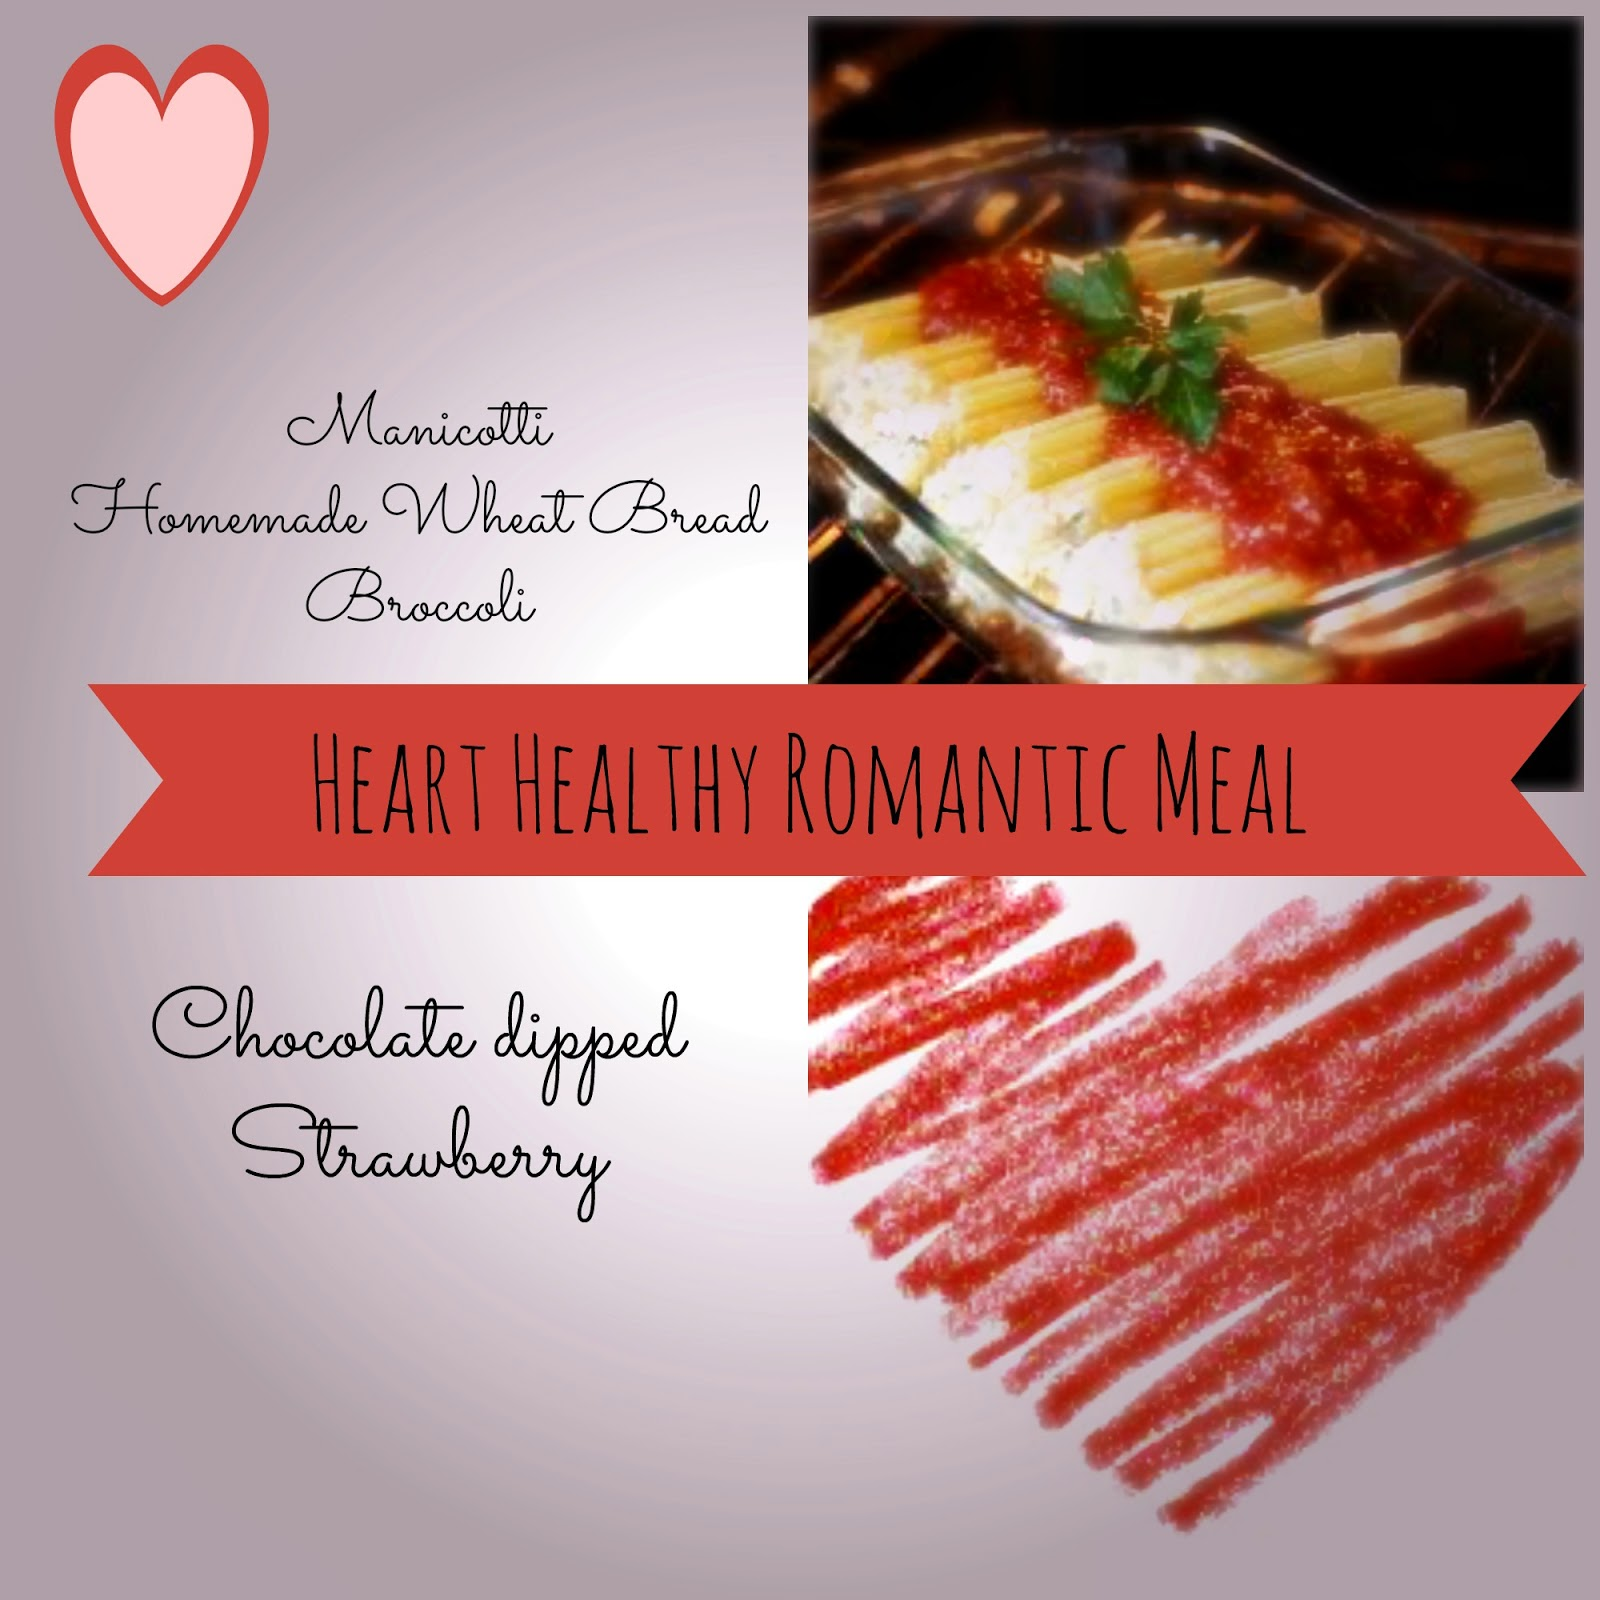 Valentine's Day, Manicotti, Homemade wheat bread, broccoli, chocolate dipped strawberries